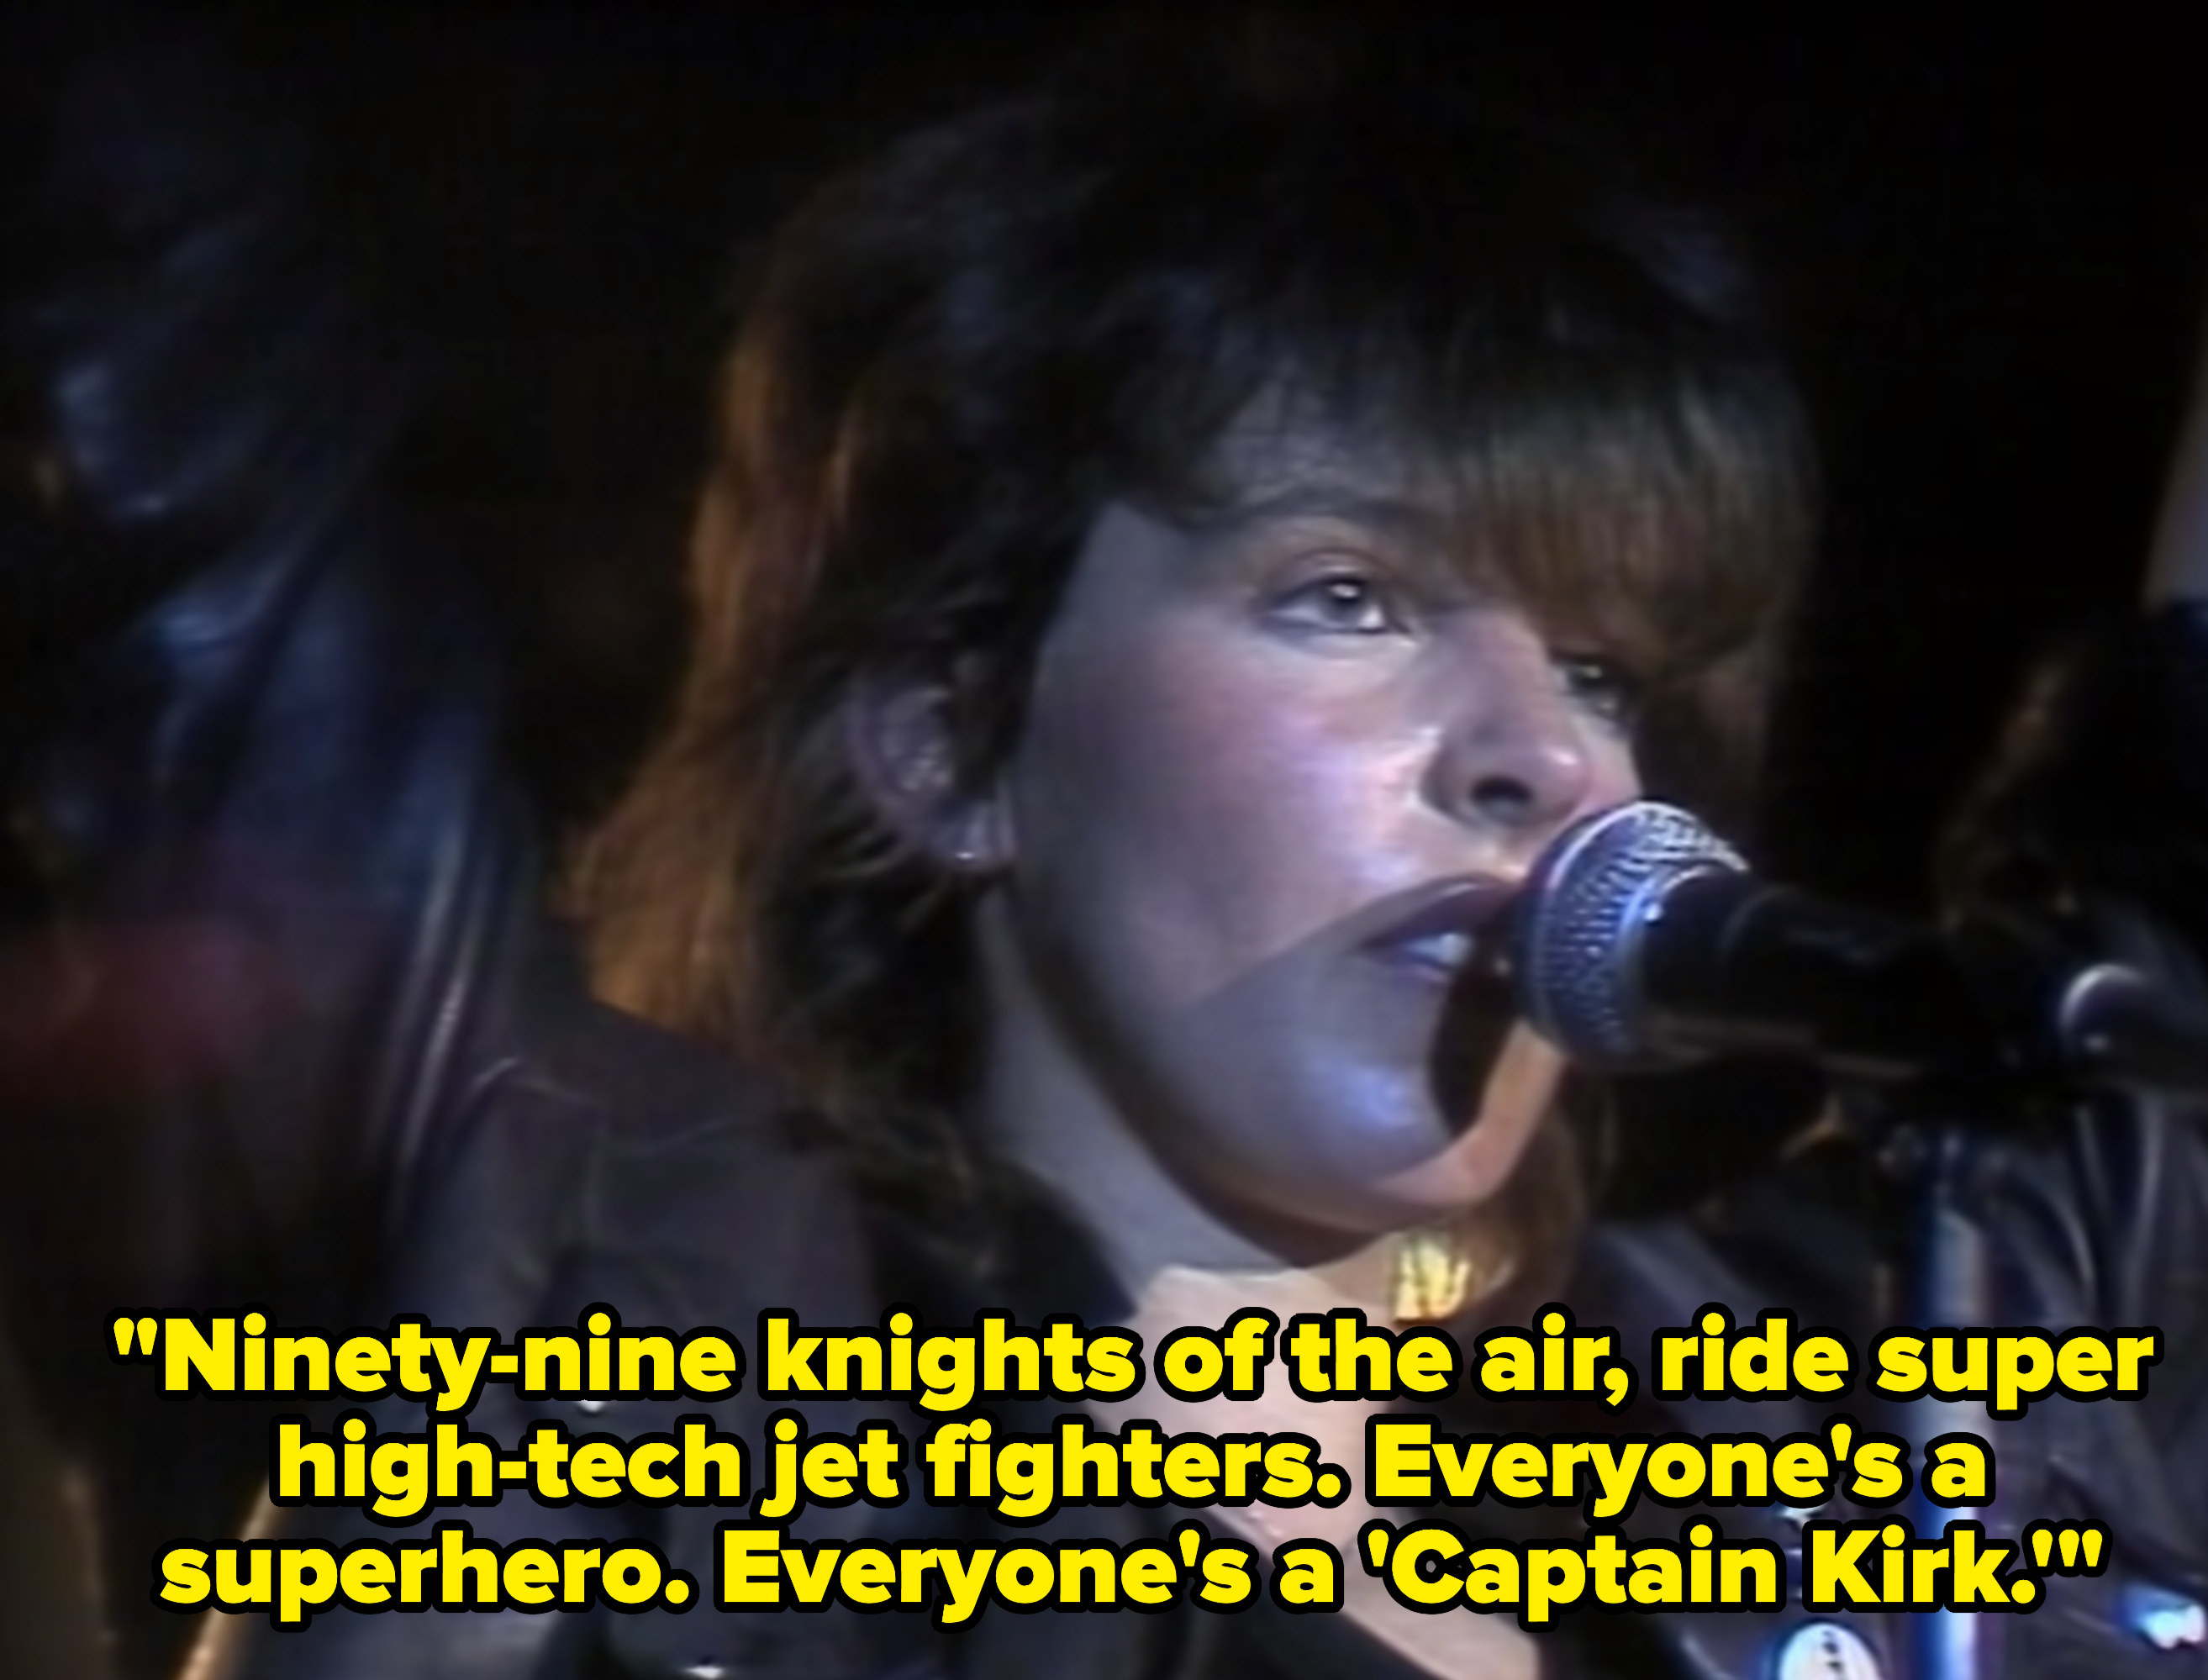 """""""99 Red Balloons"""" music video with caption, """"Ninety-nine knights of the air, ride super high-tech jet fighters. Everyone's a superhero. Everyone's a 'Captain Kirk'"""""""